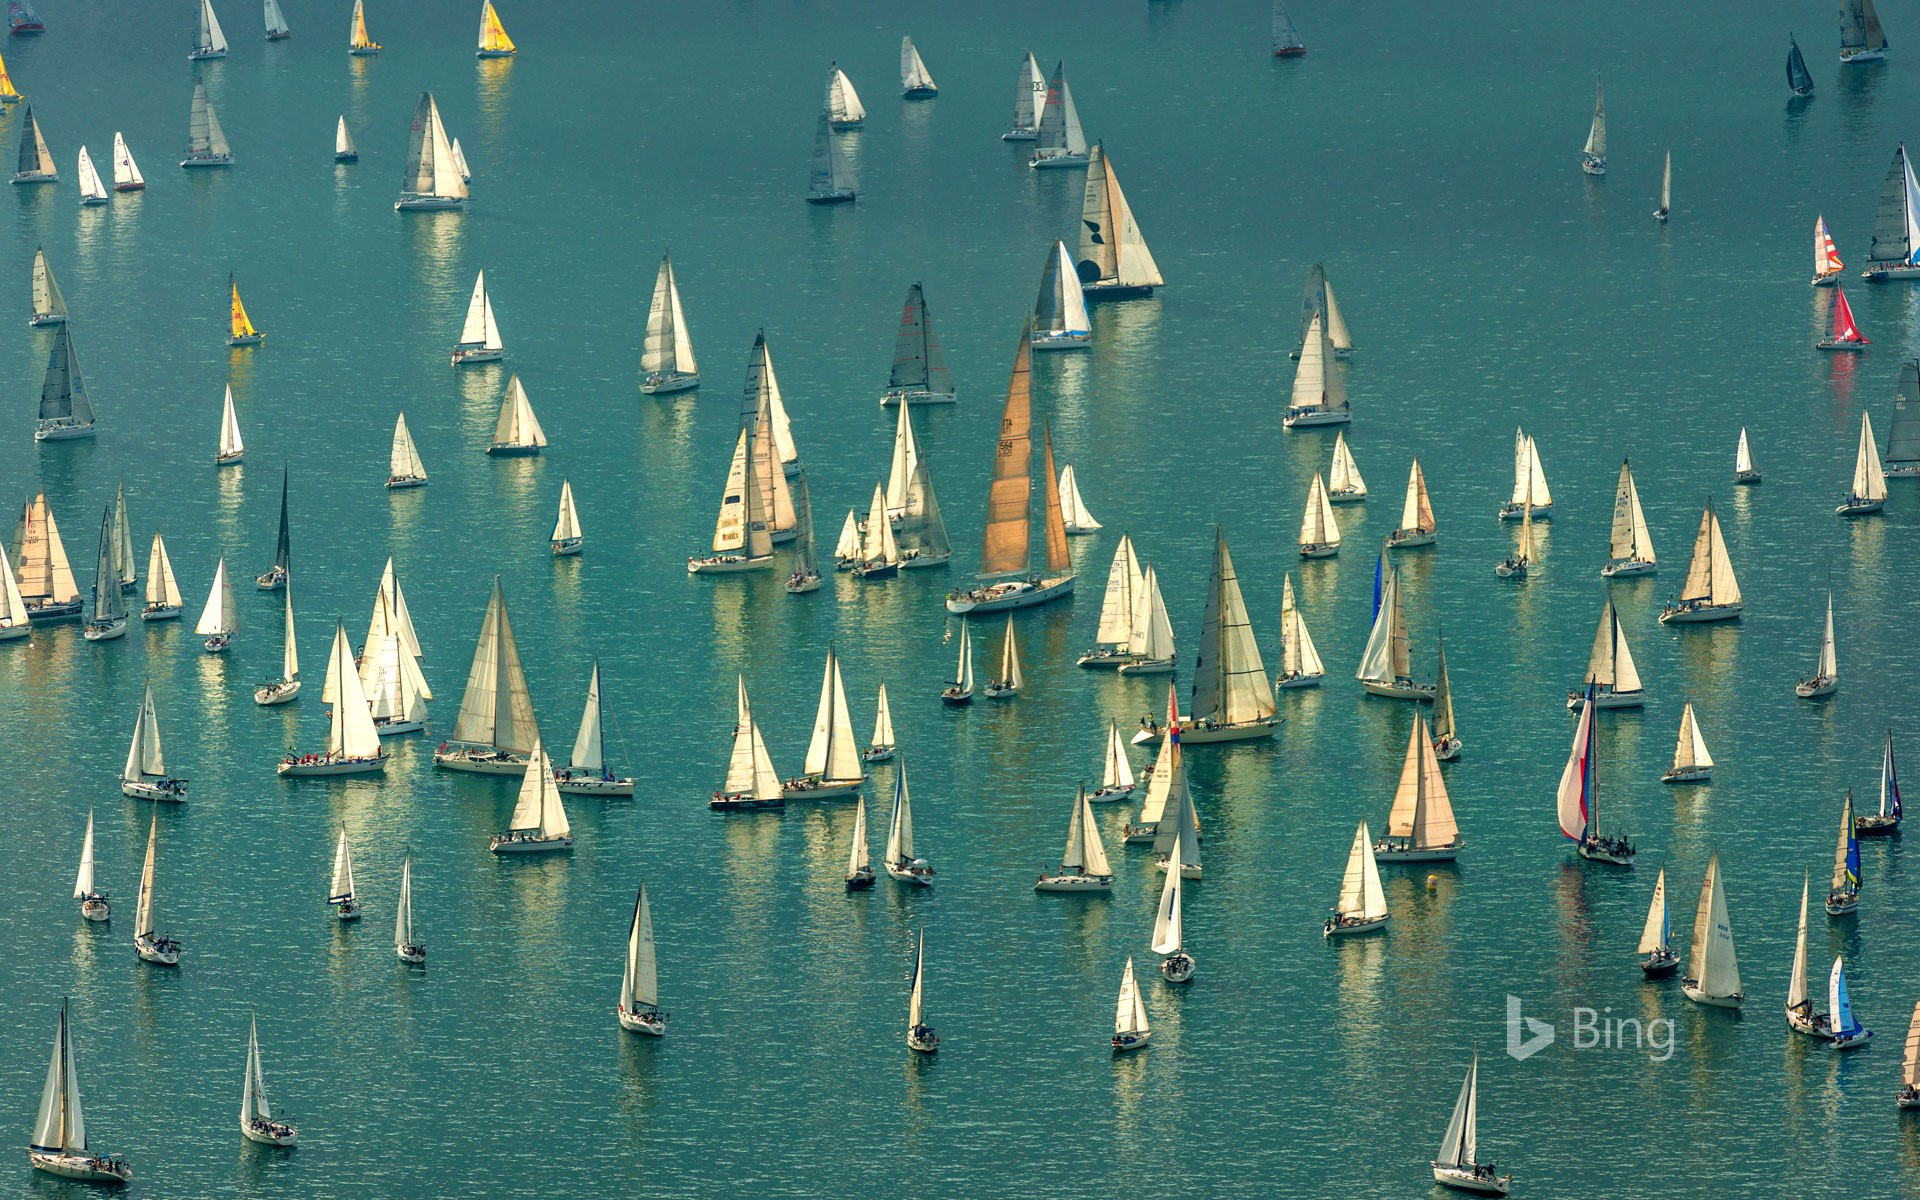 Boats massing for the Barcolana regatta in the Gulf of Trieste, Italy